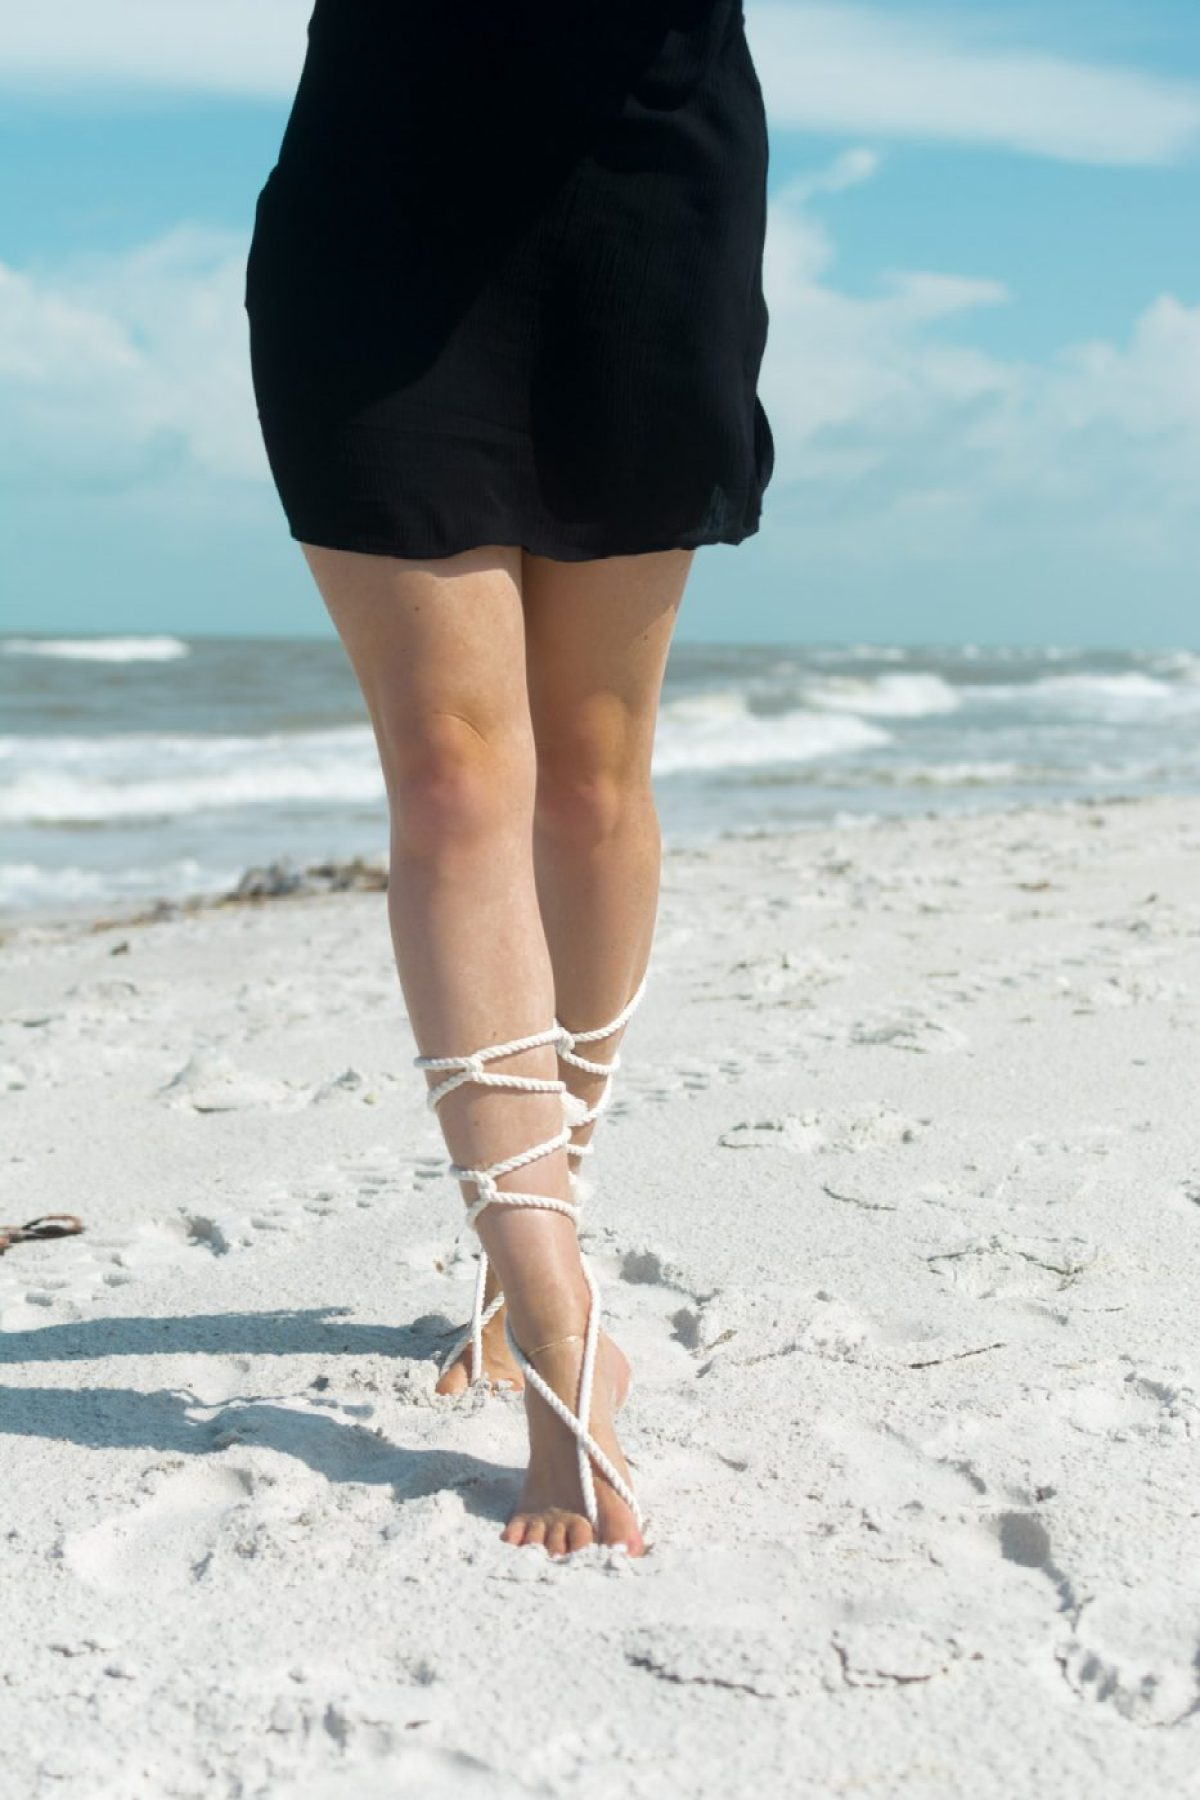 Rope Barefoot Sandals by Jenny Bess of Sweet Teal